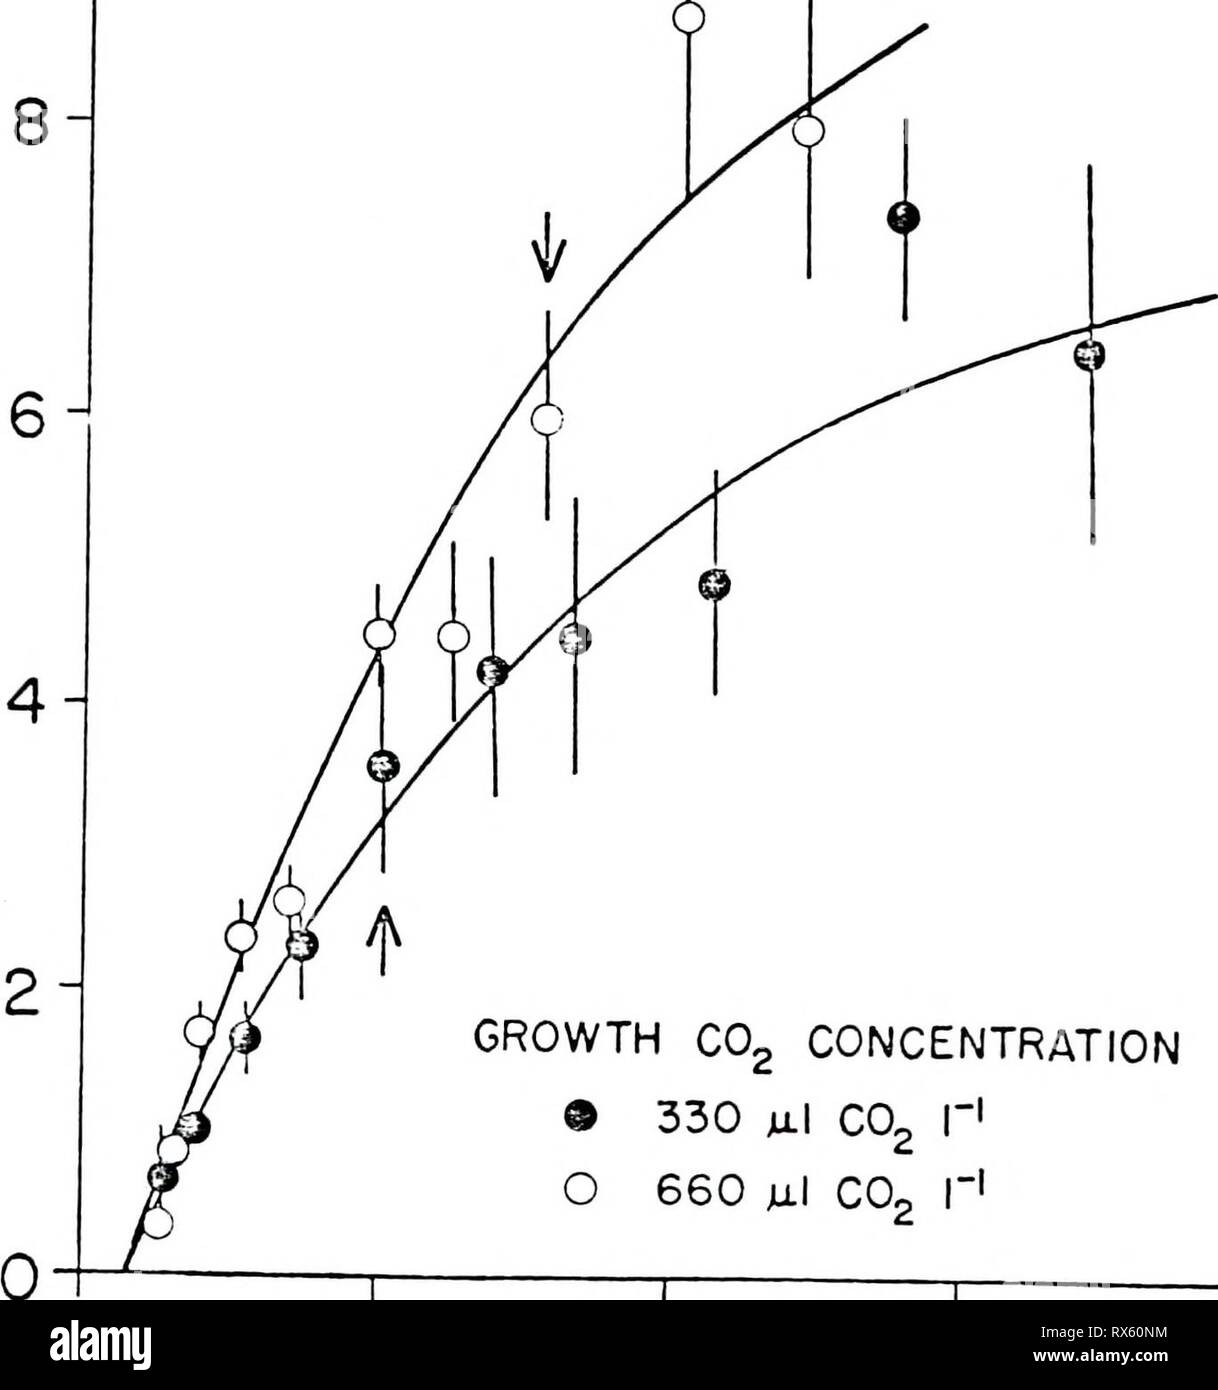 Effects of carbon dioxide on Effects of carbon dioxide on the physiology and biochemistry of photosynthesis in soybean effectsofcarbond00camp Year: 1986  GROWTH C02 CONCENTRATION ® 330 julI co2 r1 660 Ml C02 I'! B   GROWTH C02 CONCENTRATION 9 330 ju.1 co2 I-1 O 660 ul co2 r1 0 200 400 600 800 INTERCELLULAR C02 CONCENTRATION (jjj CO, I'1) - Stock Image